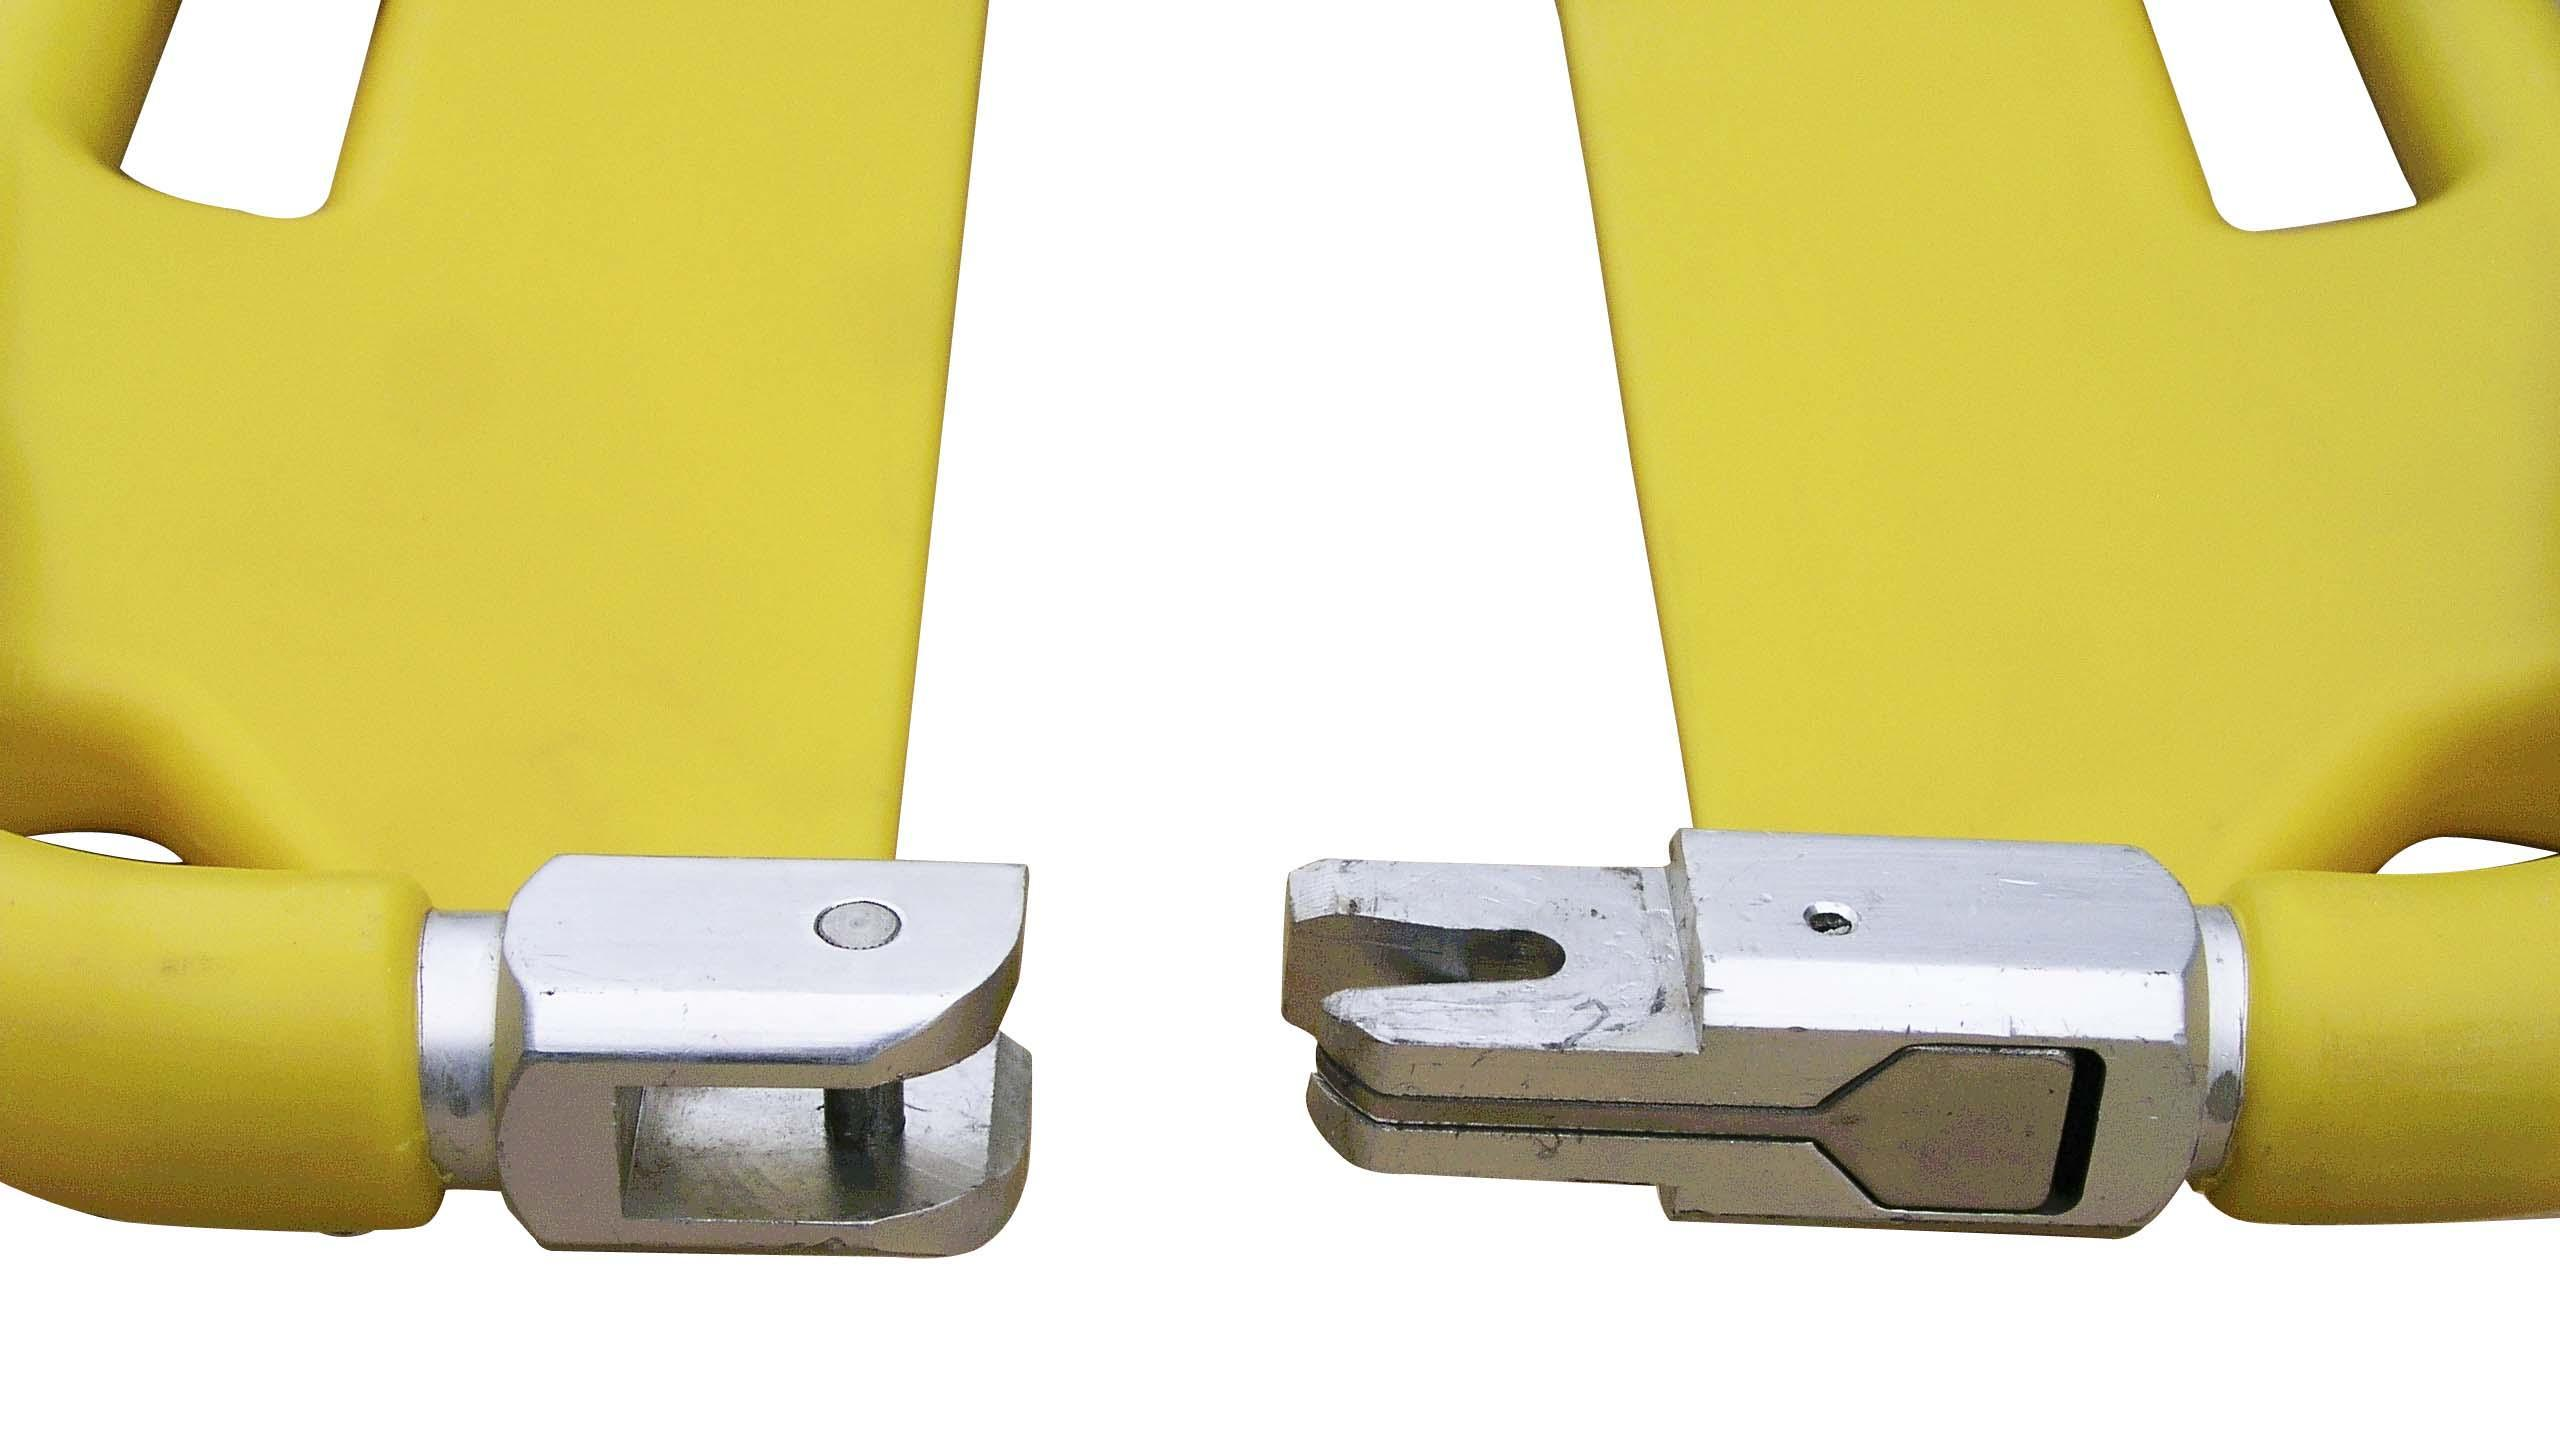 X-ray Compatible Plastic Scoop Stretcher